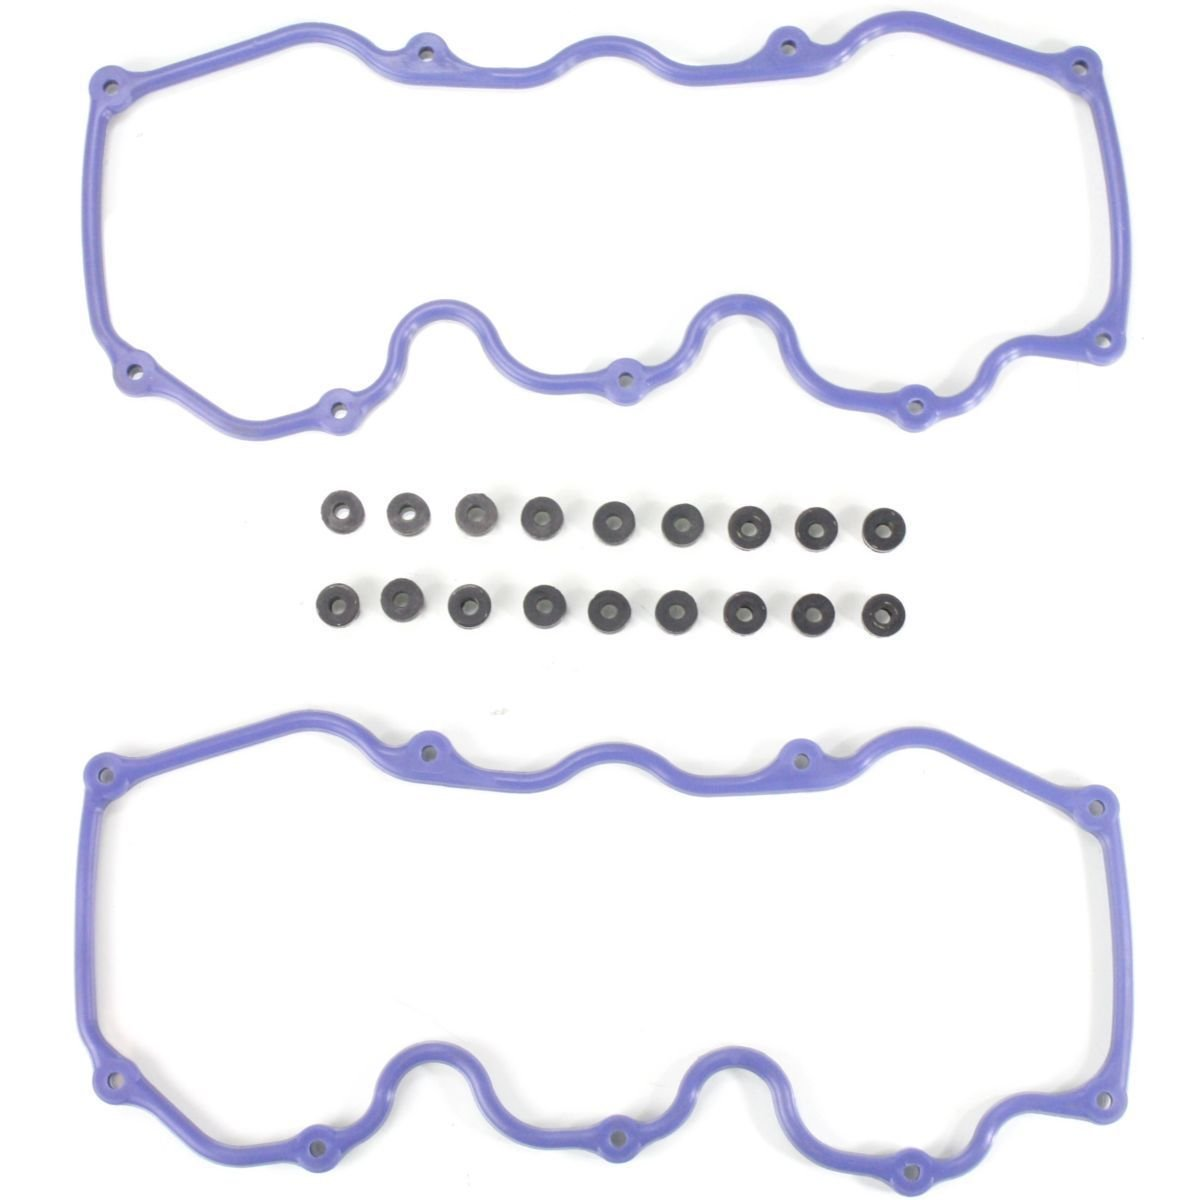 Diften 399-A0028-X01 New 2-piece set Valve Cover Gaskets Hardbody Truck for Nissan Maxima Pathfinder